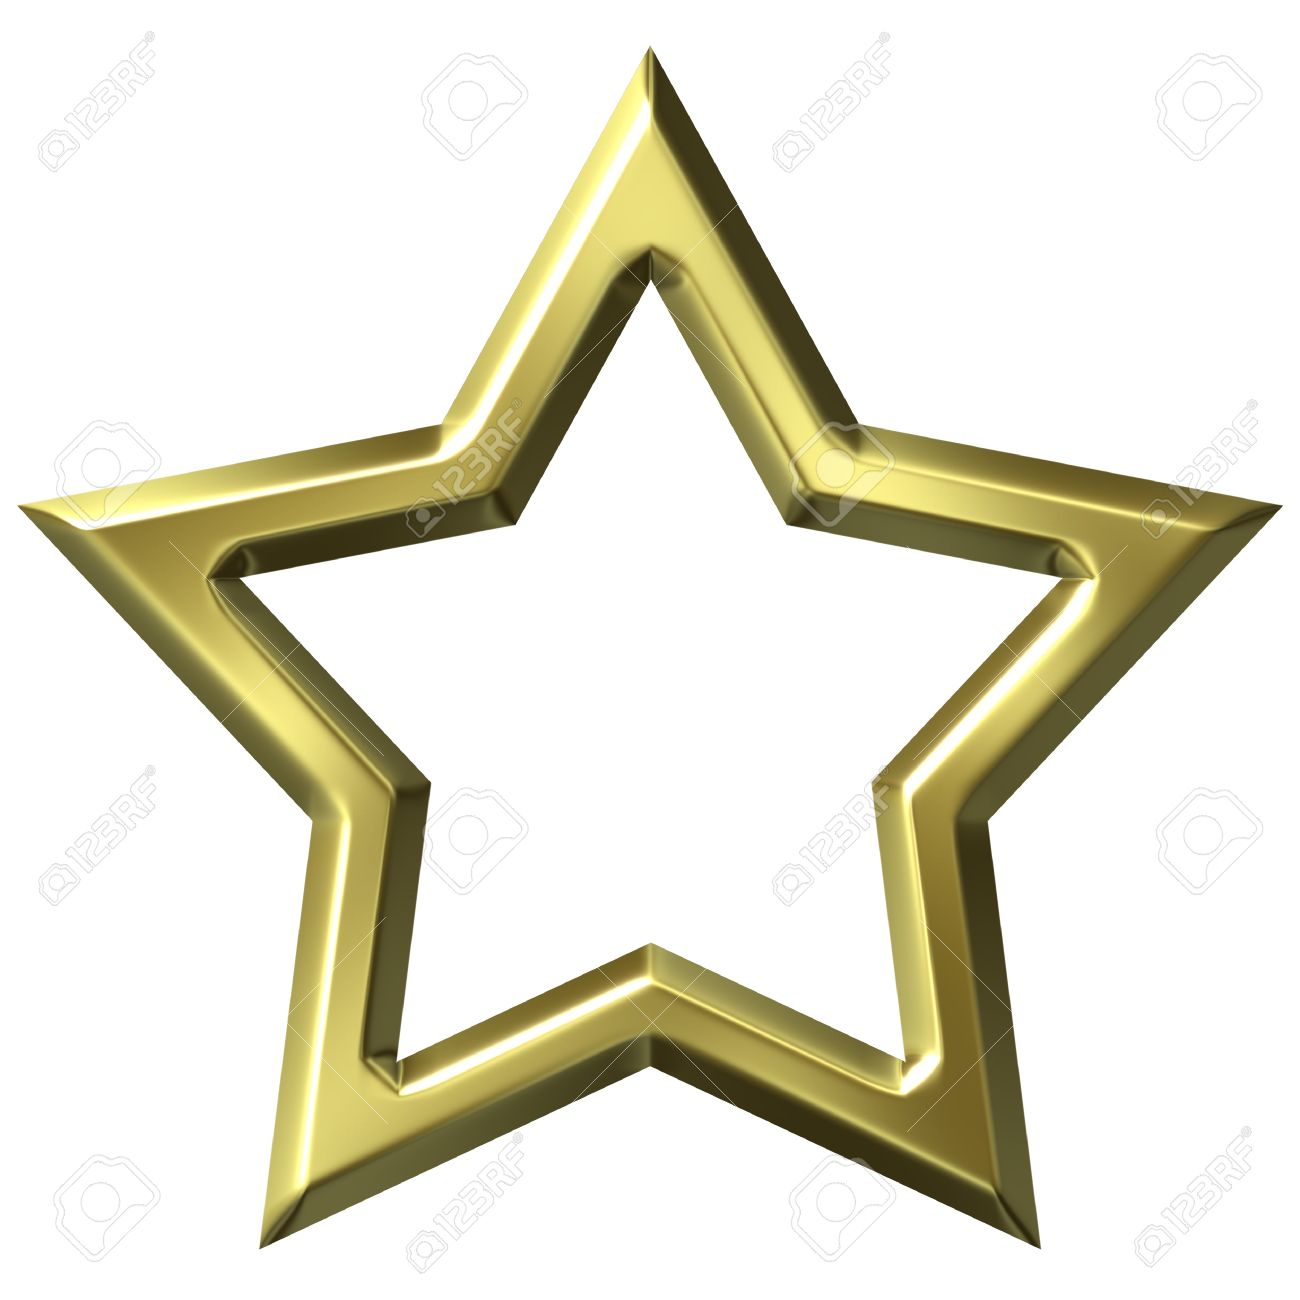 3d Golden Star Frame Isolated In White Stock Photo, Picture And ...